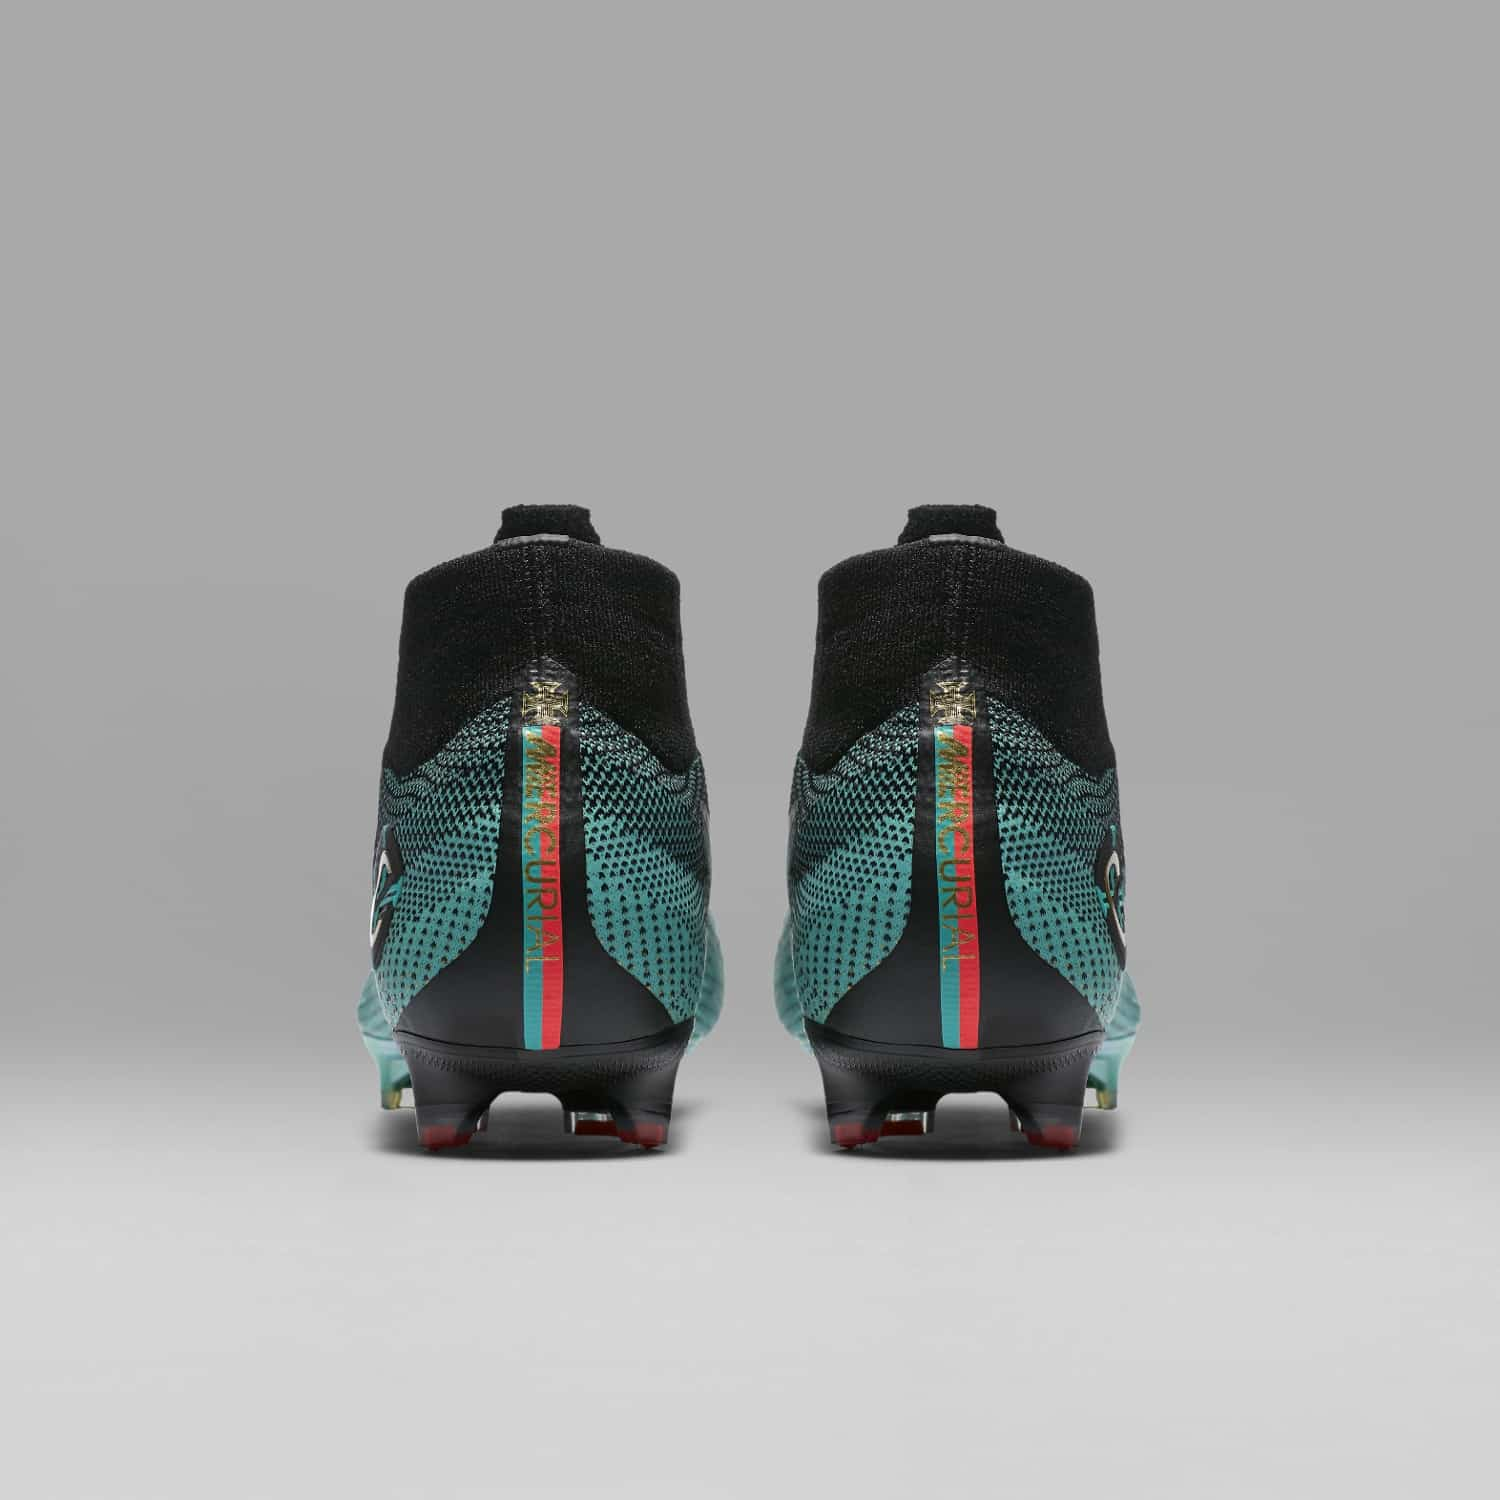 chaussures-football-Nike-Mercurial-Superfly-CR7-Chapitre-6-Born-Leader-img11